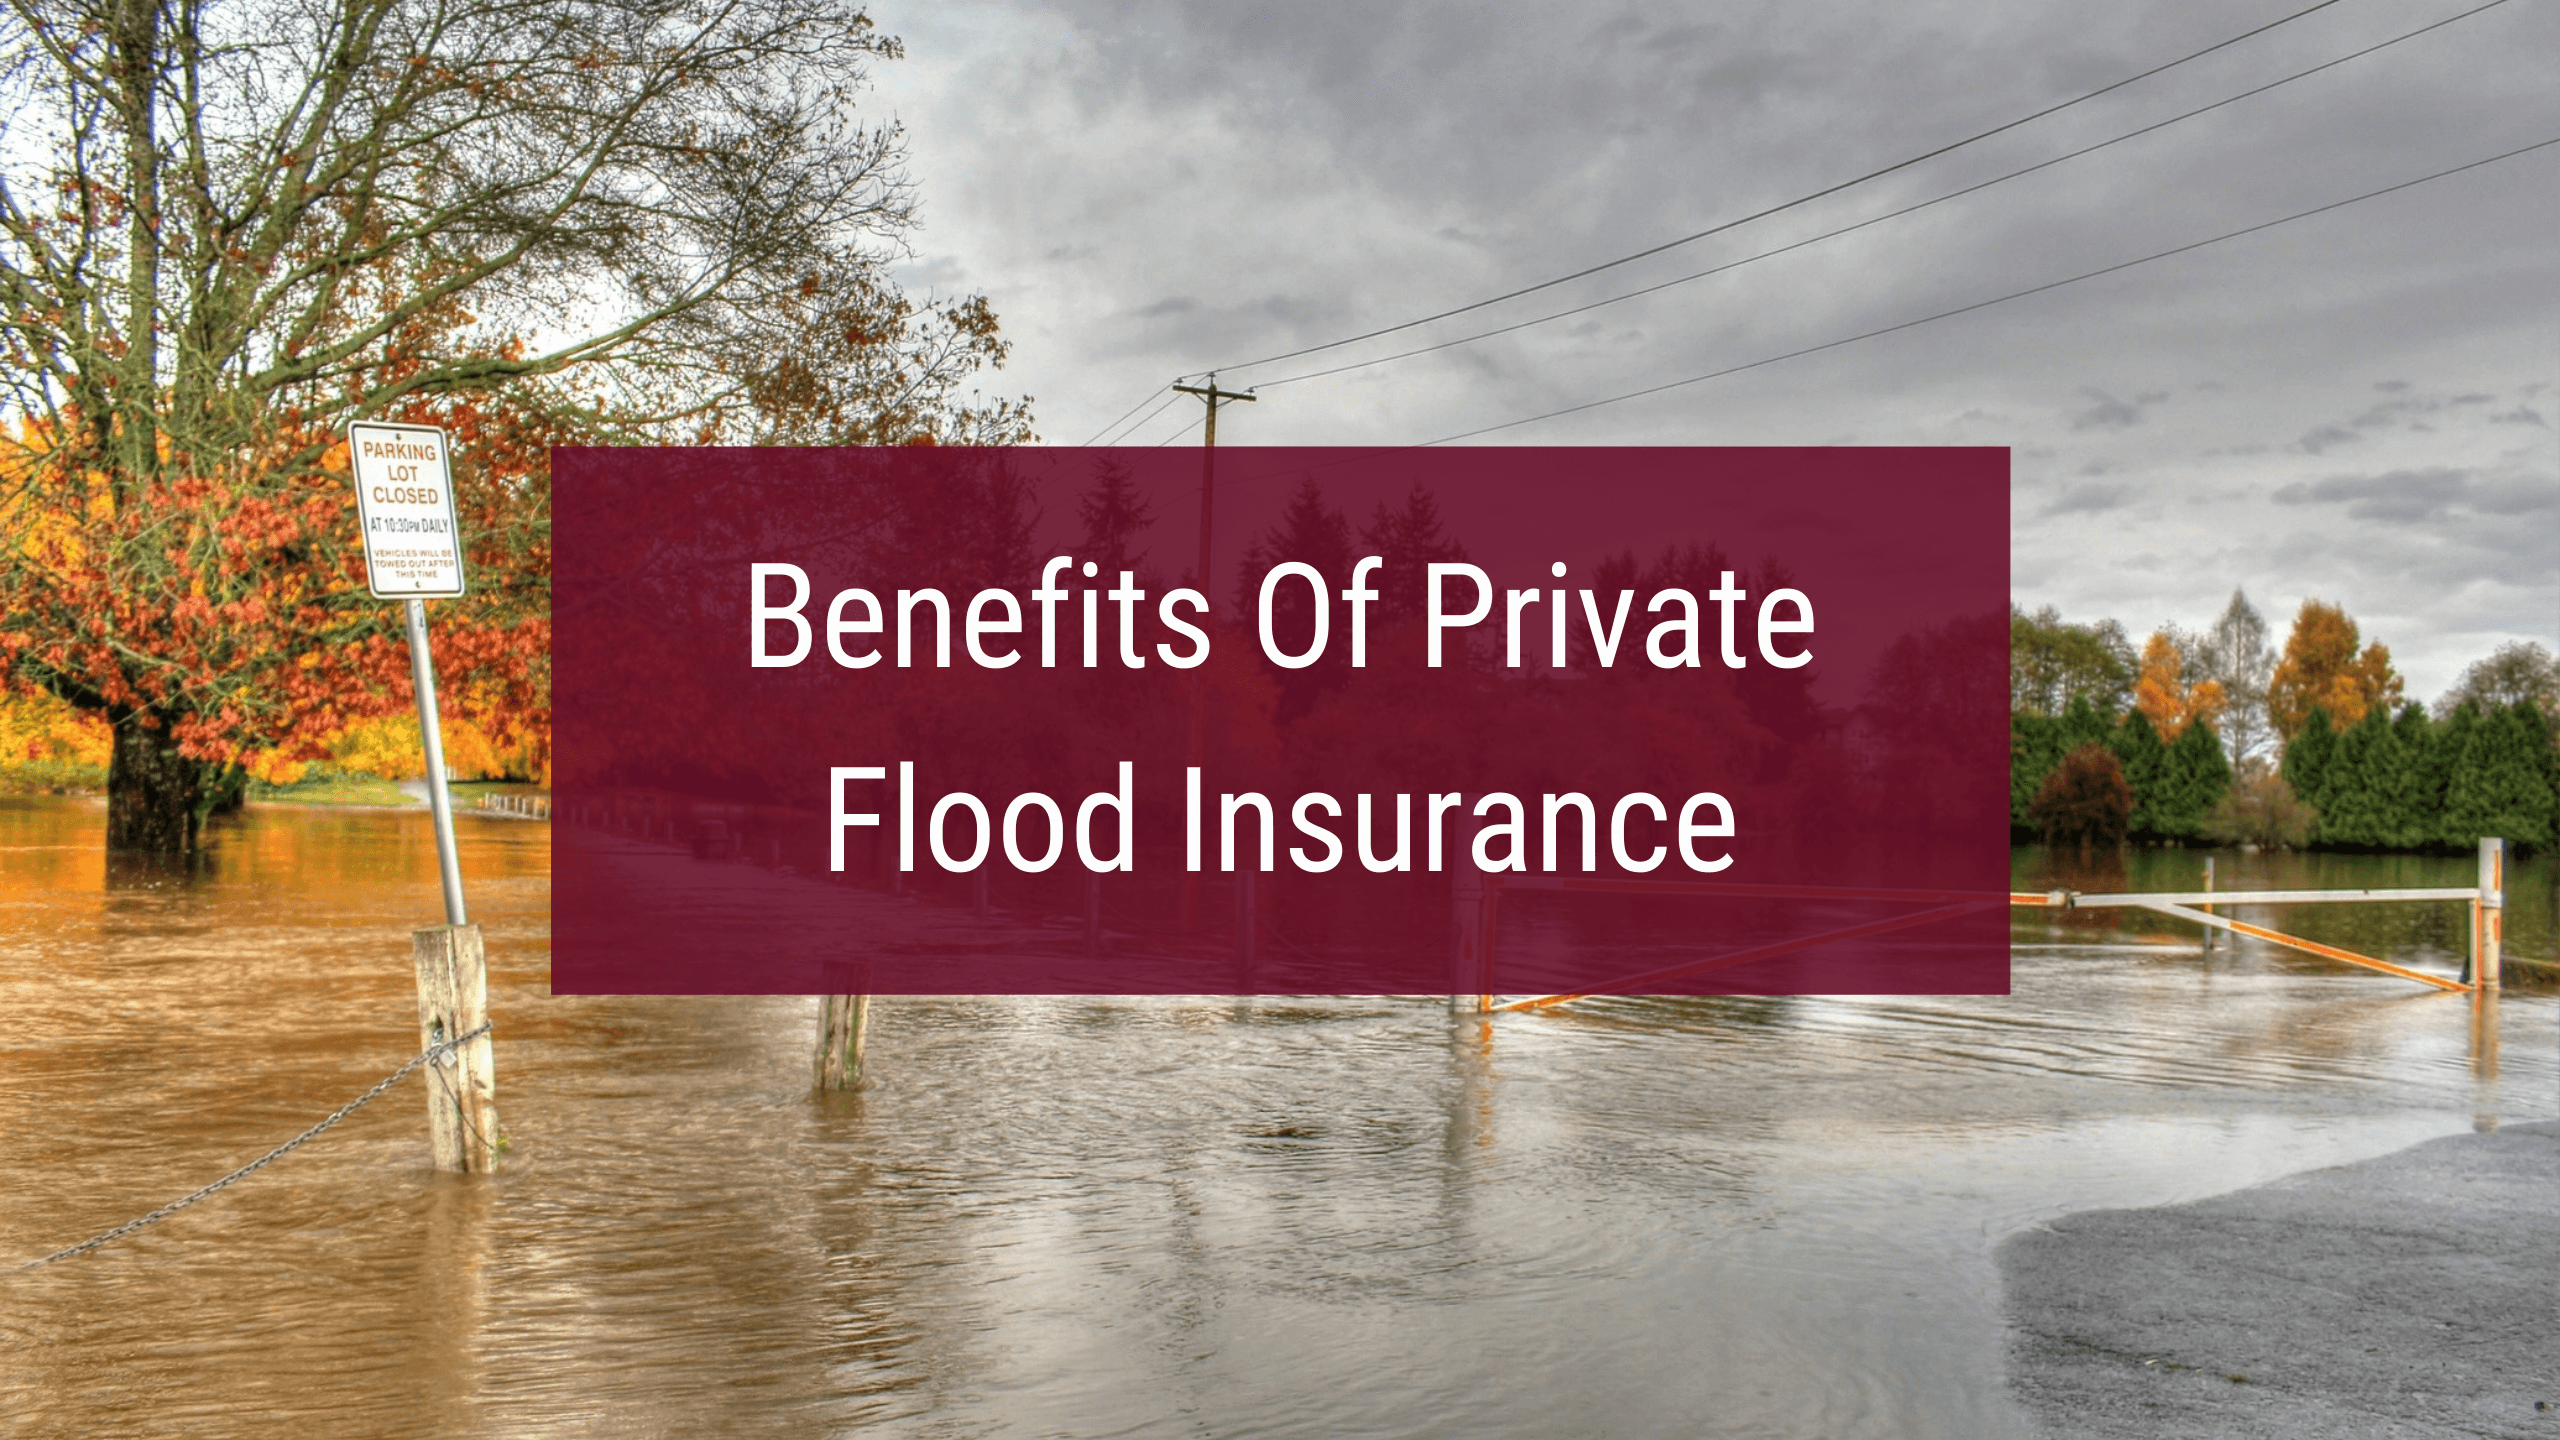 Benefits of private flood insurance in Pennsylvania.